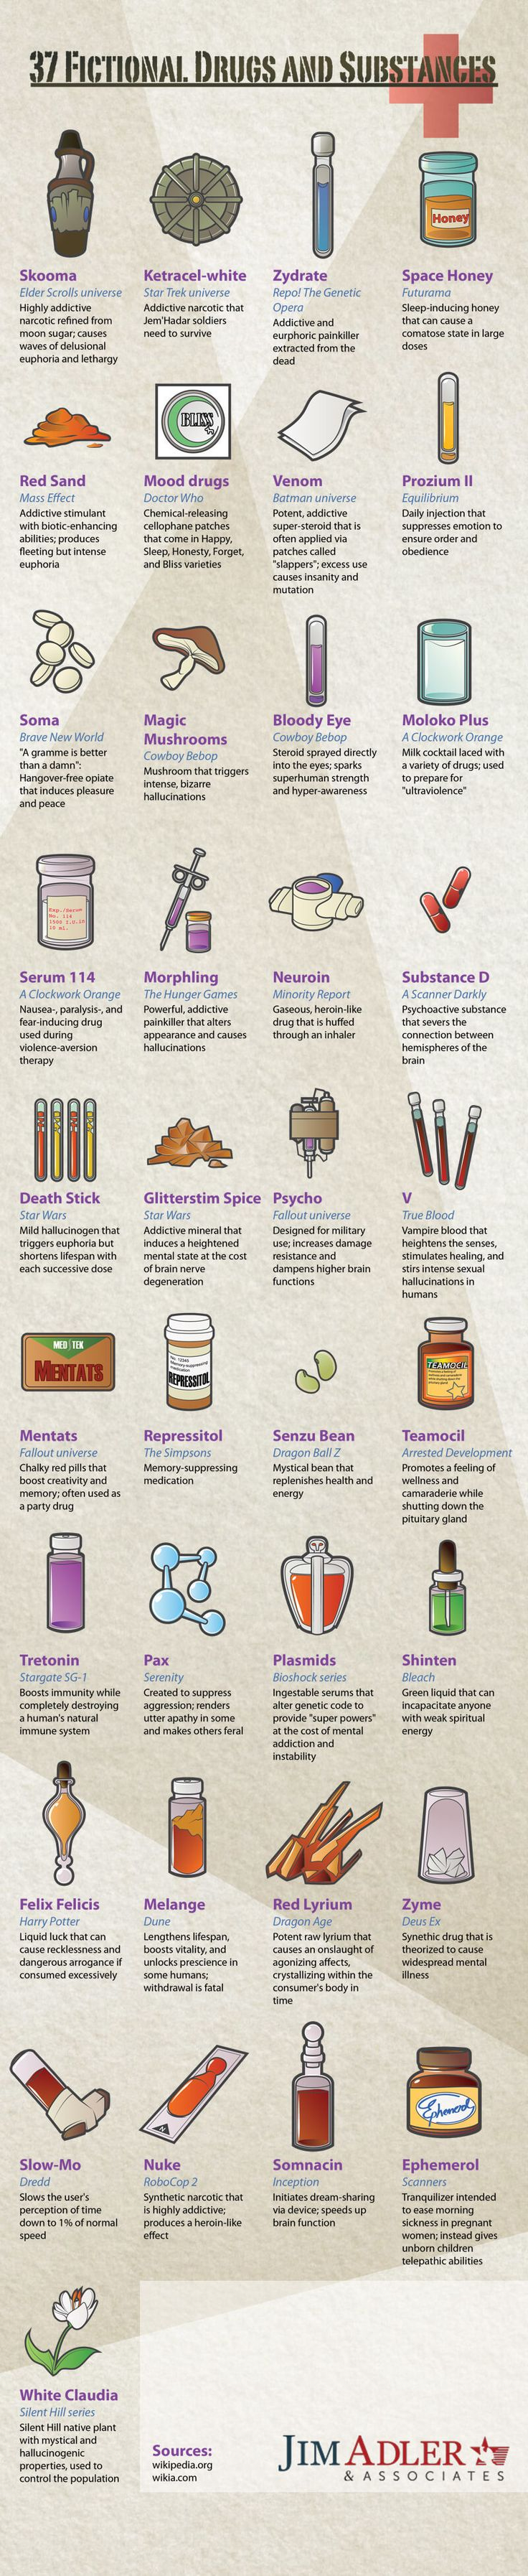 If anyone offers you Moloko Plus or Morphling, you'll know to say no after you read this infographicof fictional drugs and substances.                     Source: J.Adler and Associates   If you...